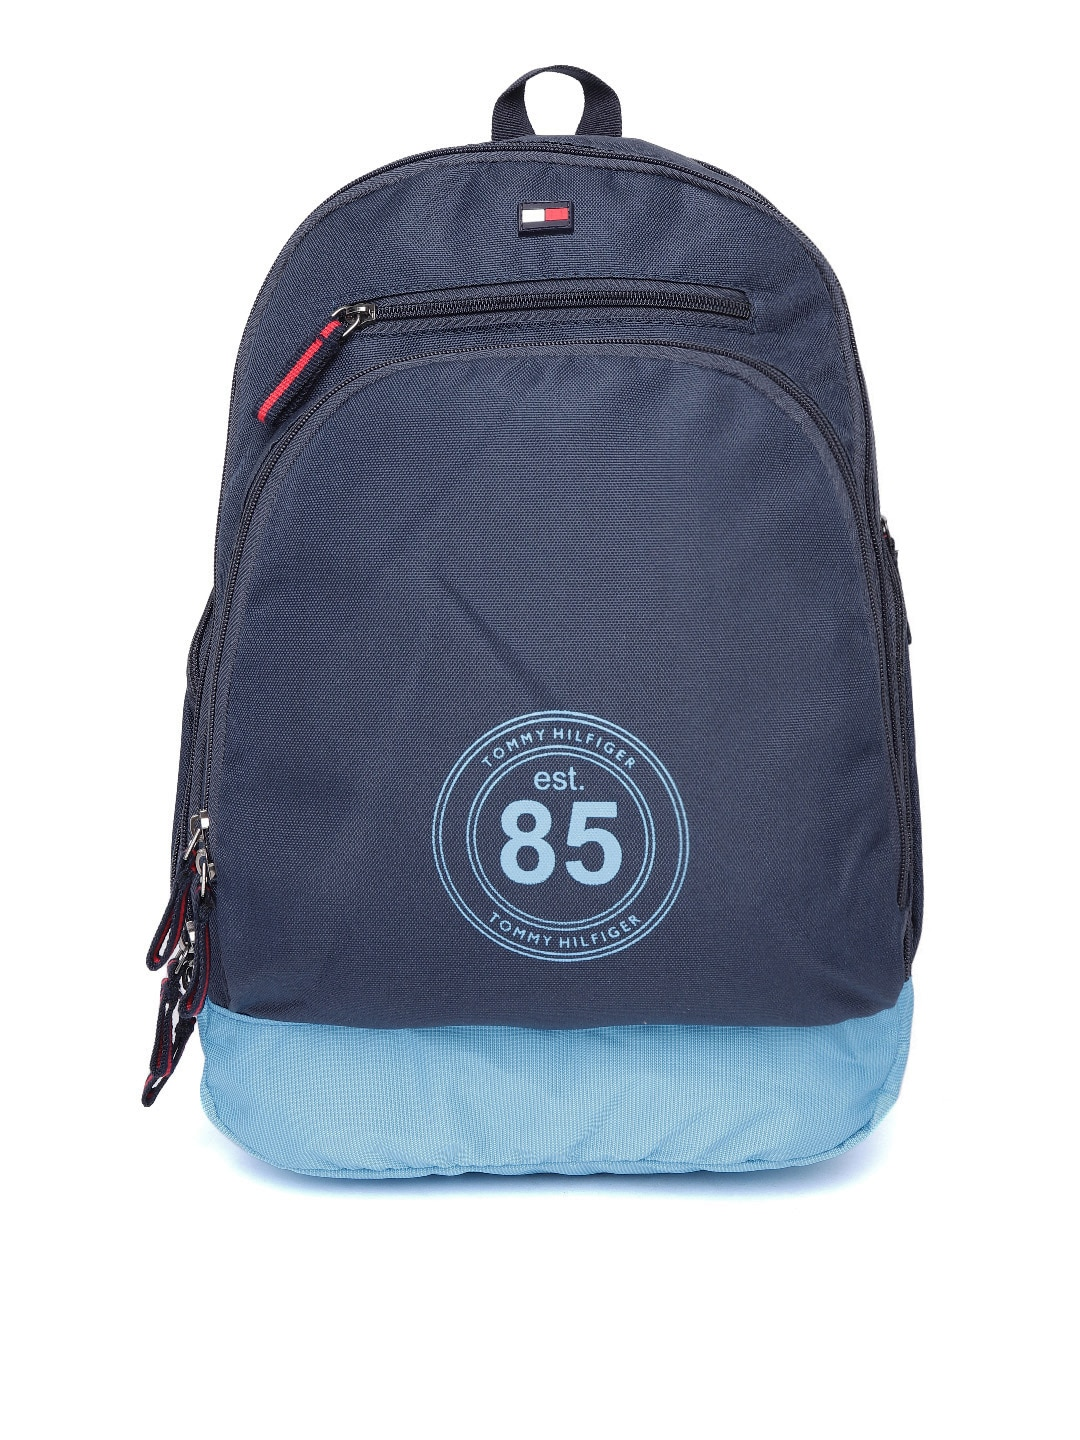 ed4071bb0d3d Tommy Hilfiger Clothing - Buy Tommy Hilfiger Bags